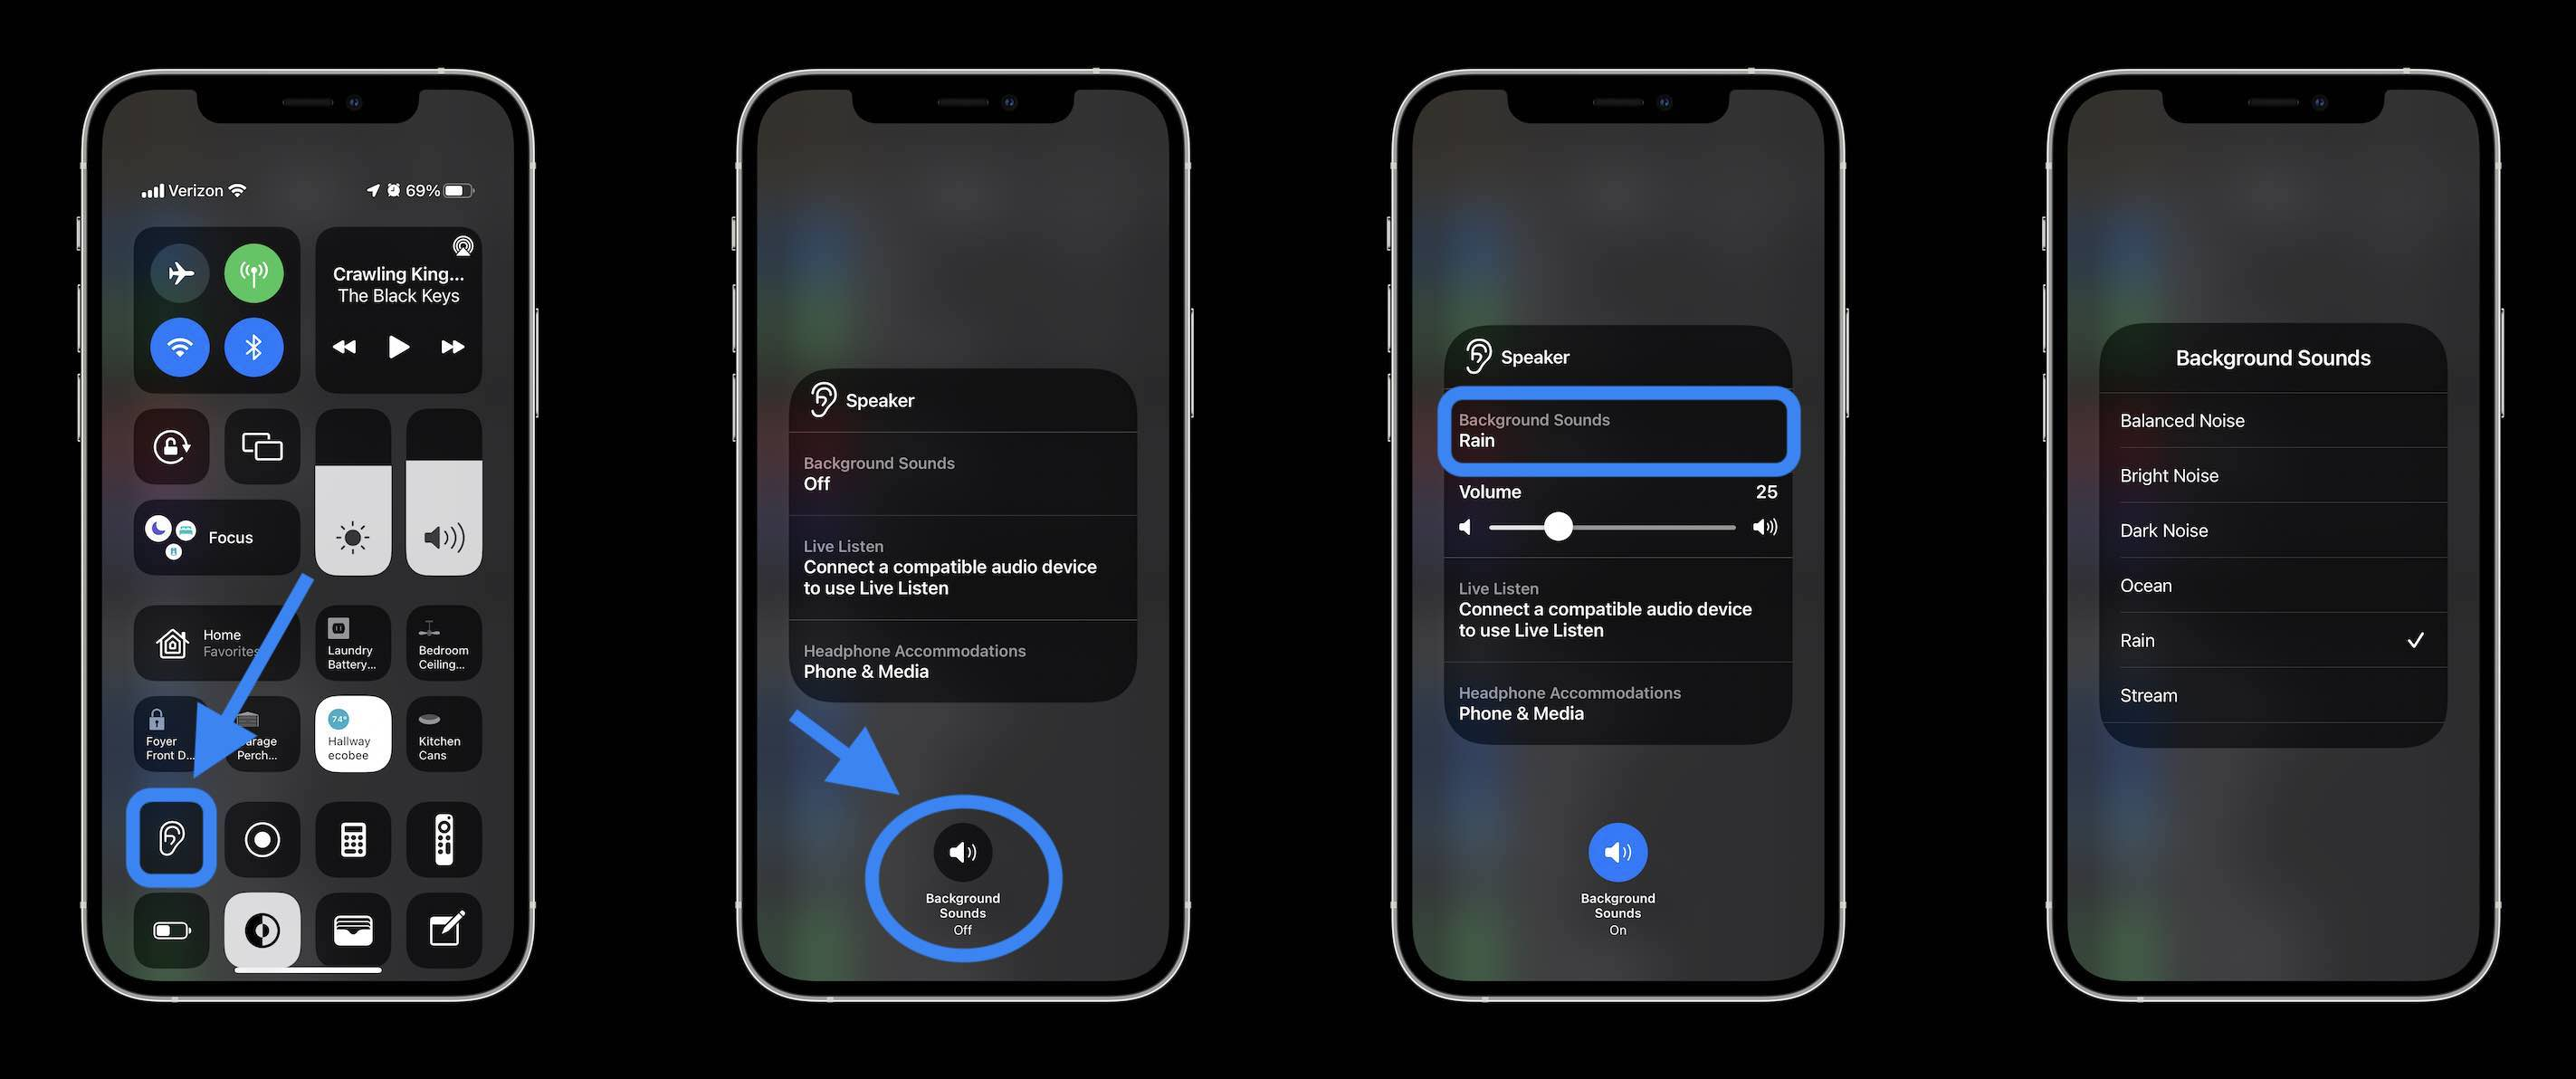 How to use iPhone Background Sounds in iOS 15 Control Center